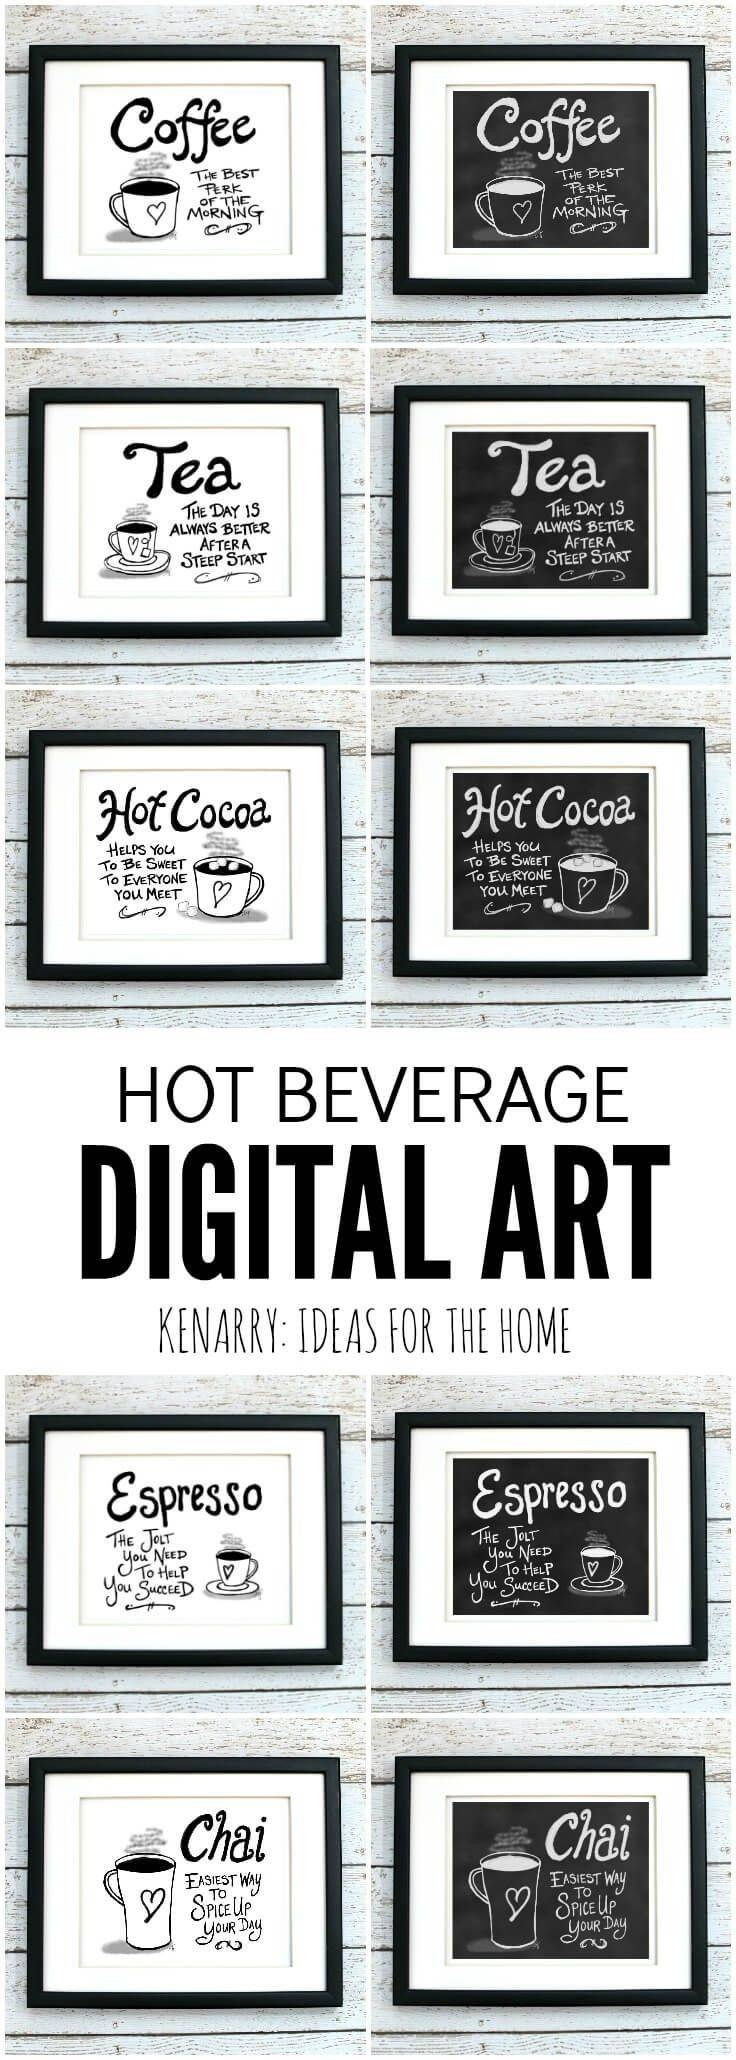 25+ Unique Coffee Wall Art Ideas On Pinterest | Coffe Shop For Best And Newest Cafe Latte Kitchen Wall Art (Gallery 17 of 30)